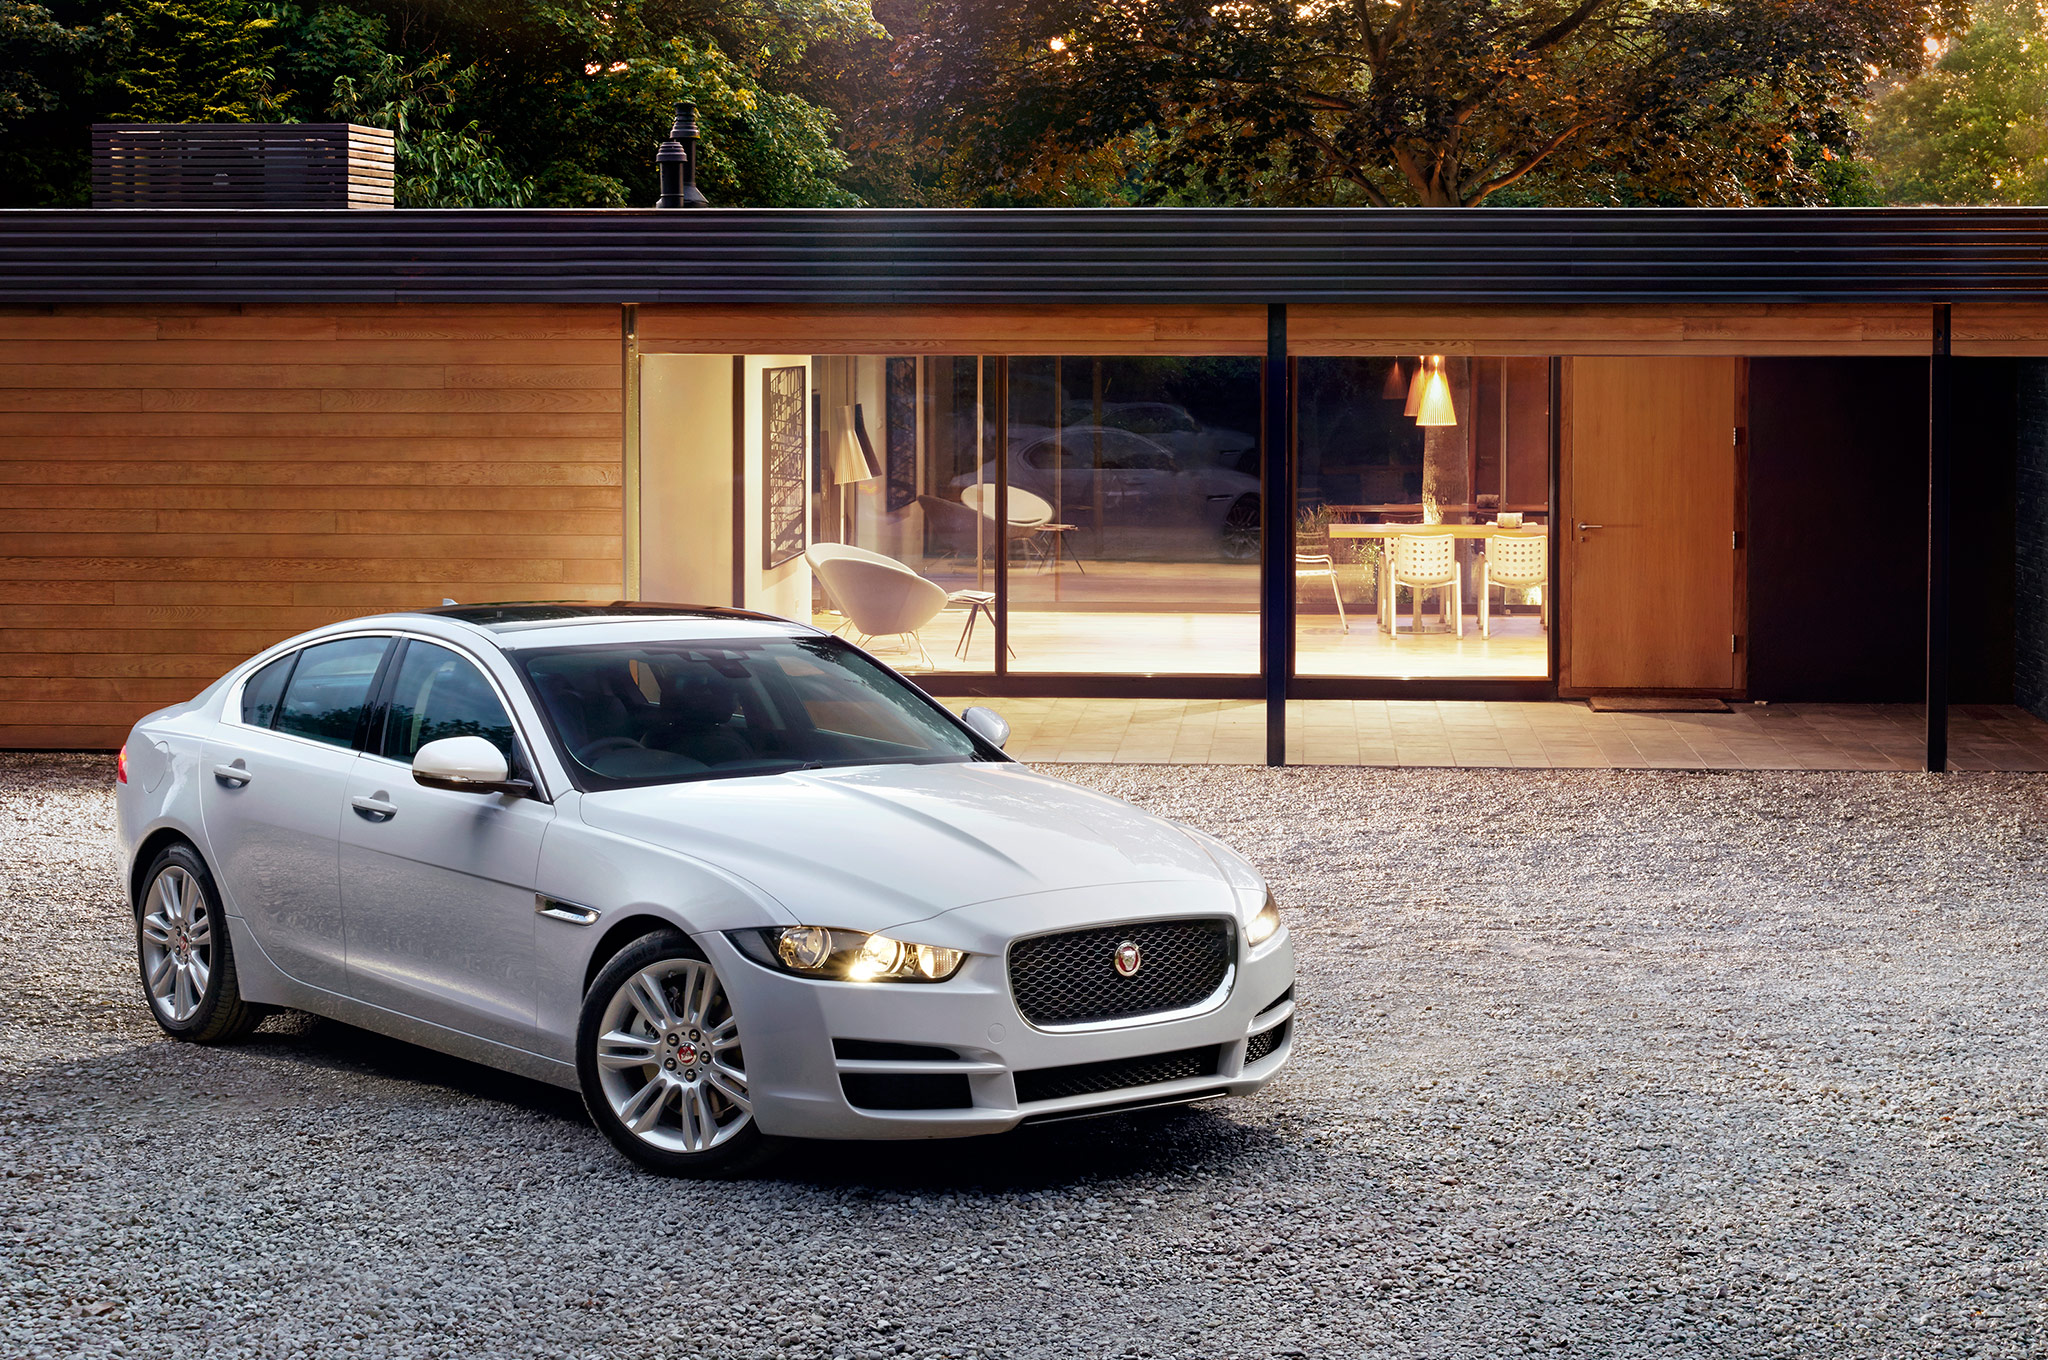 2016 Jaguar Xe White Preview (View 7 of 12)